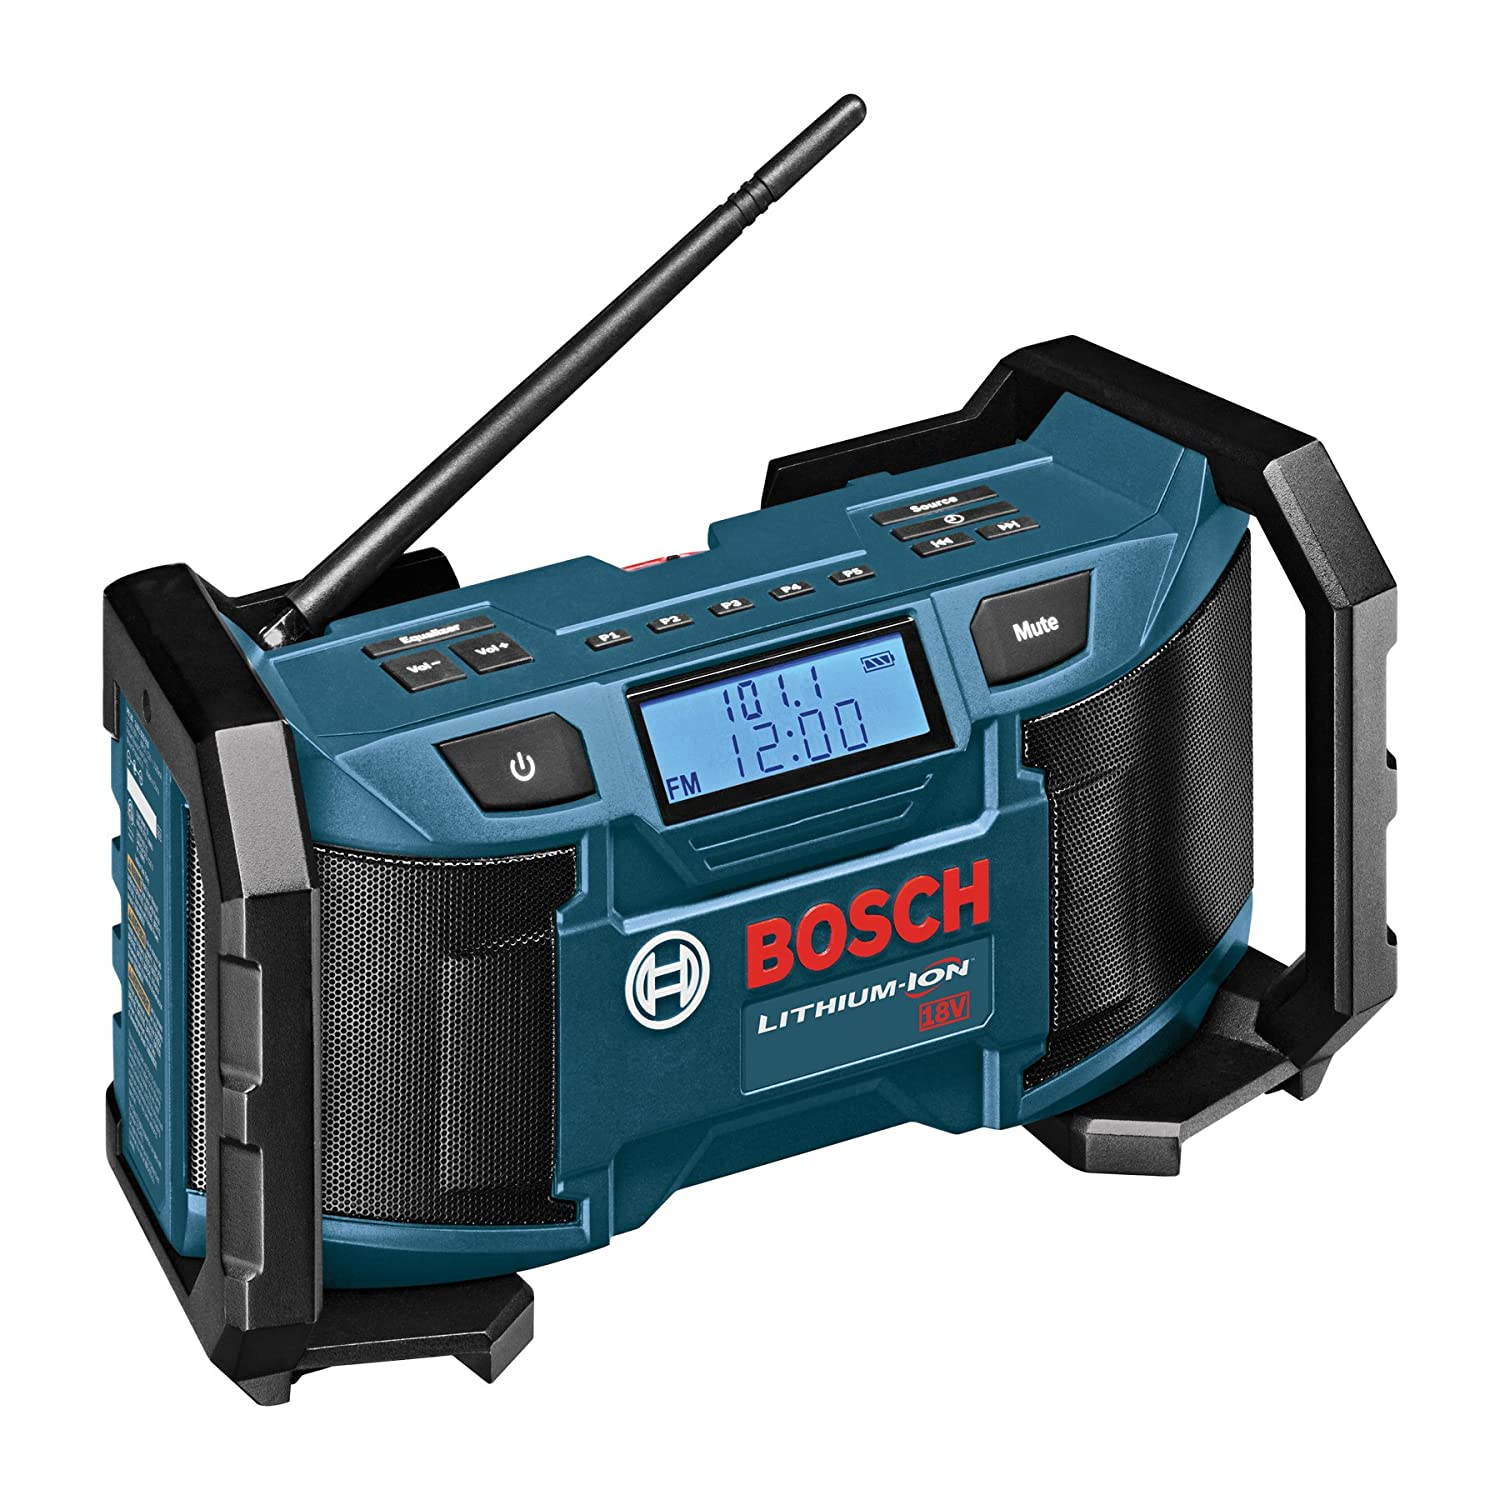 Amazon.com: Bosch 18-Volt or 120V Compact AM/FM Radio with MP3 ...